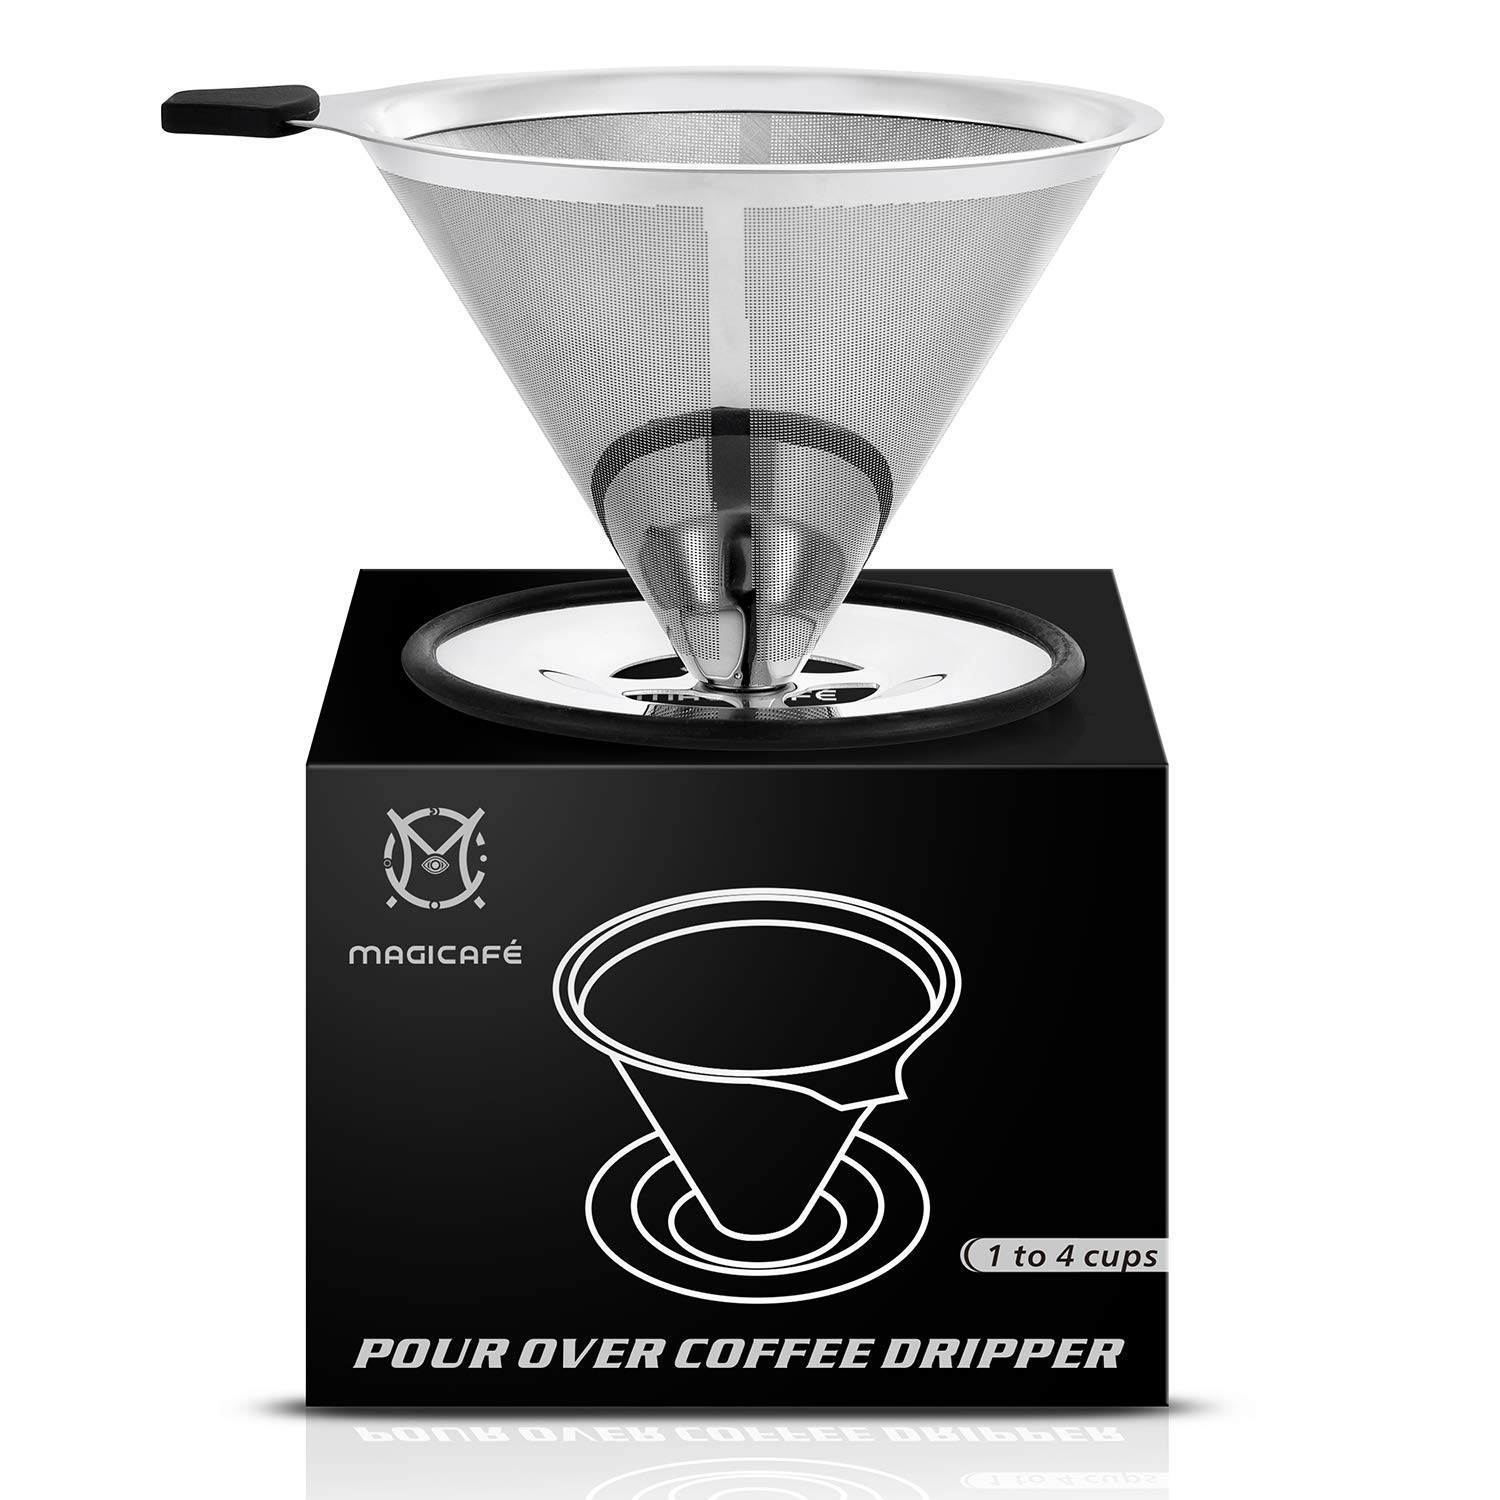 Magicafé Pour Over Coffee Dripper - Stainless Steel Micro mesh Filter Fits Most Travel Mugs,Tea And Coffee Cups medium